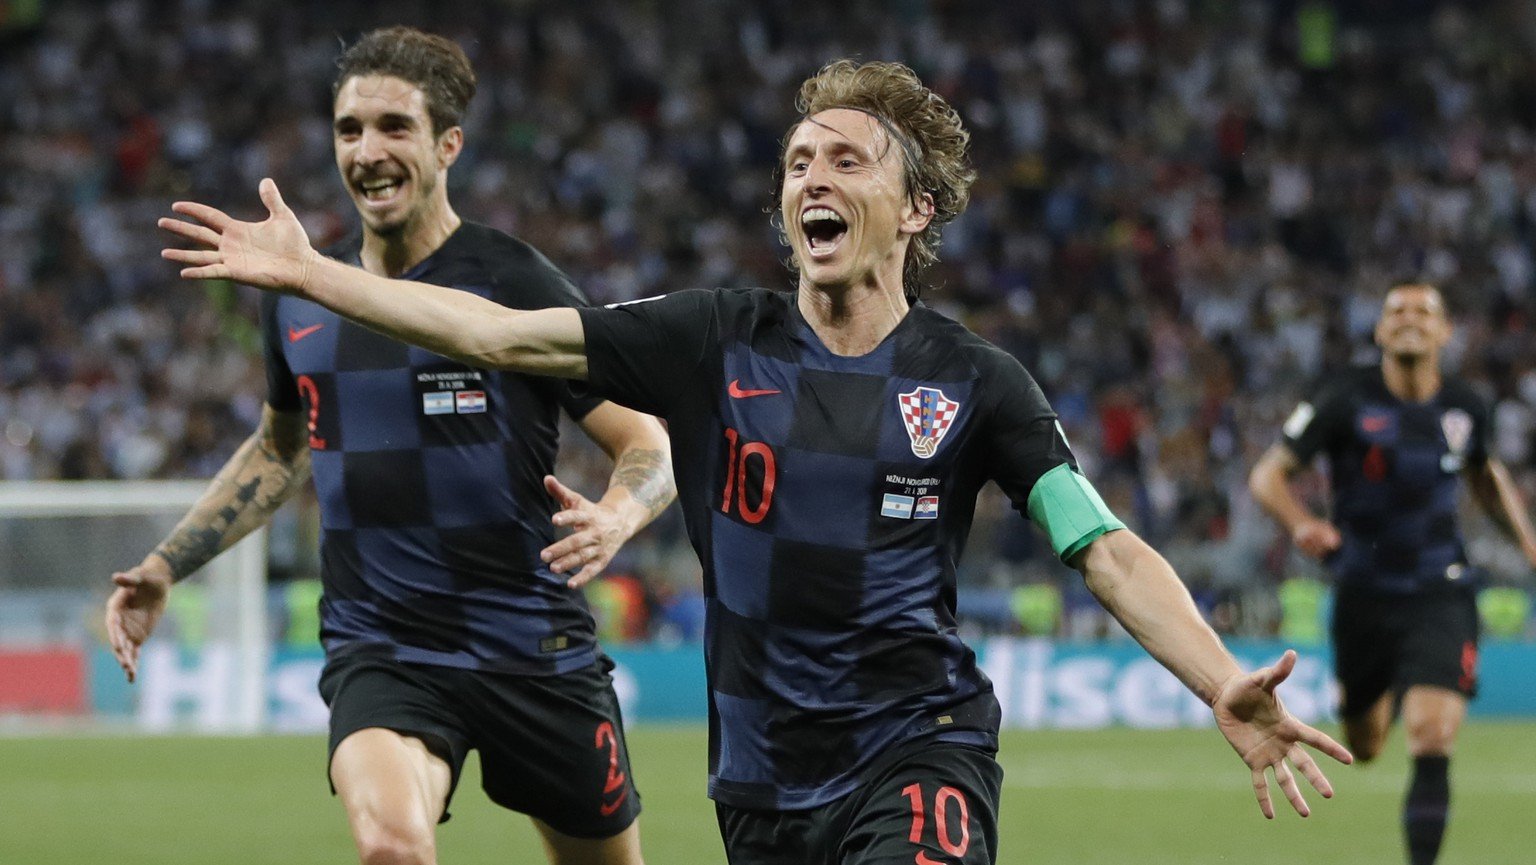 Croatia's Luka Modric, right, celebrates with teammates after scoring his side's second goal during the group D match between Argentina and Croatia at the 2018 soccer World Cup in Nizhny Novgorod Stadium in Nizhny Novgorod, Russia, Thursday, June 21, 2018. (AP Photo/Ricardo Mazalan)